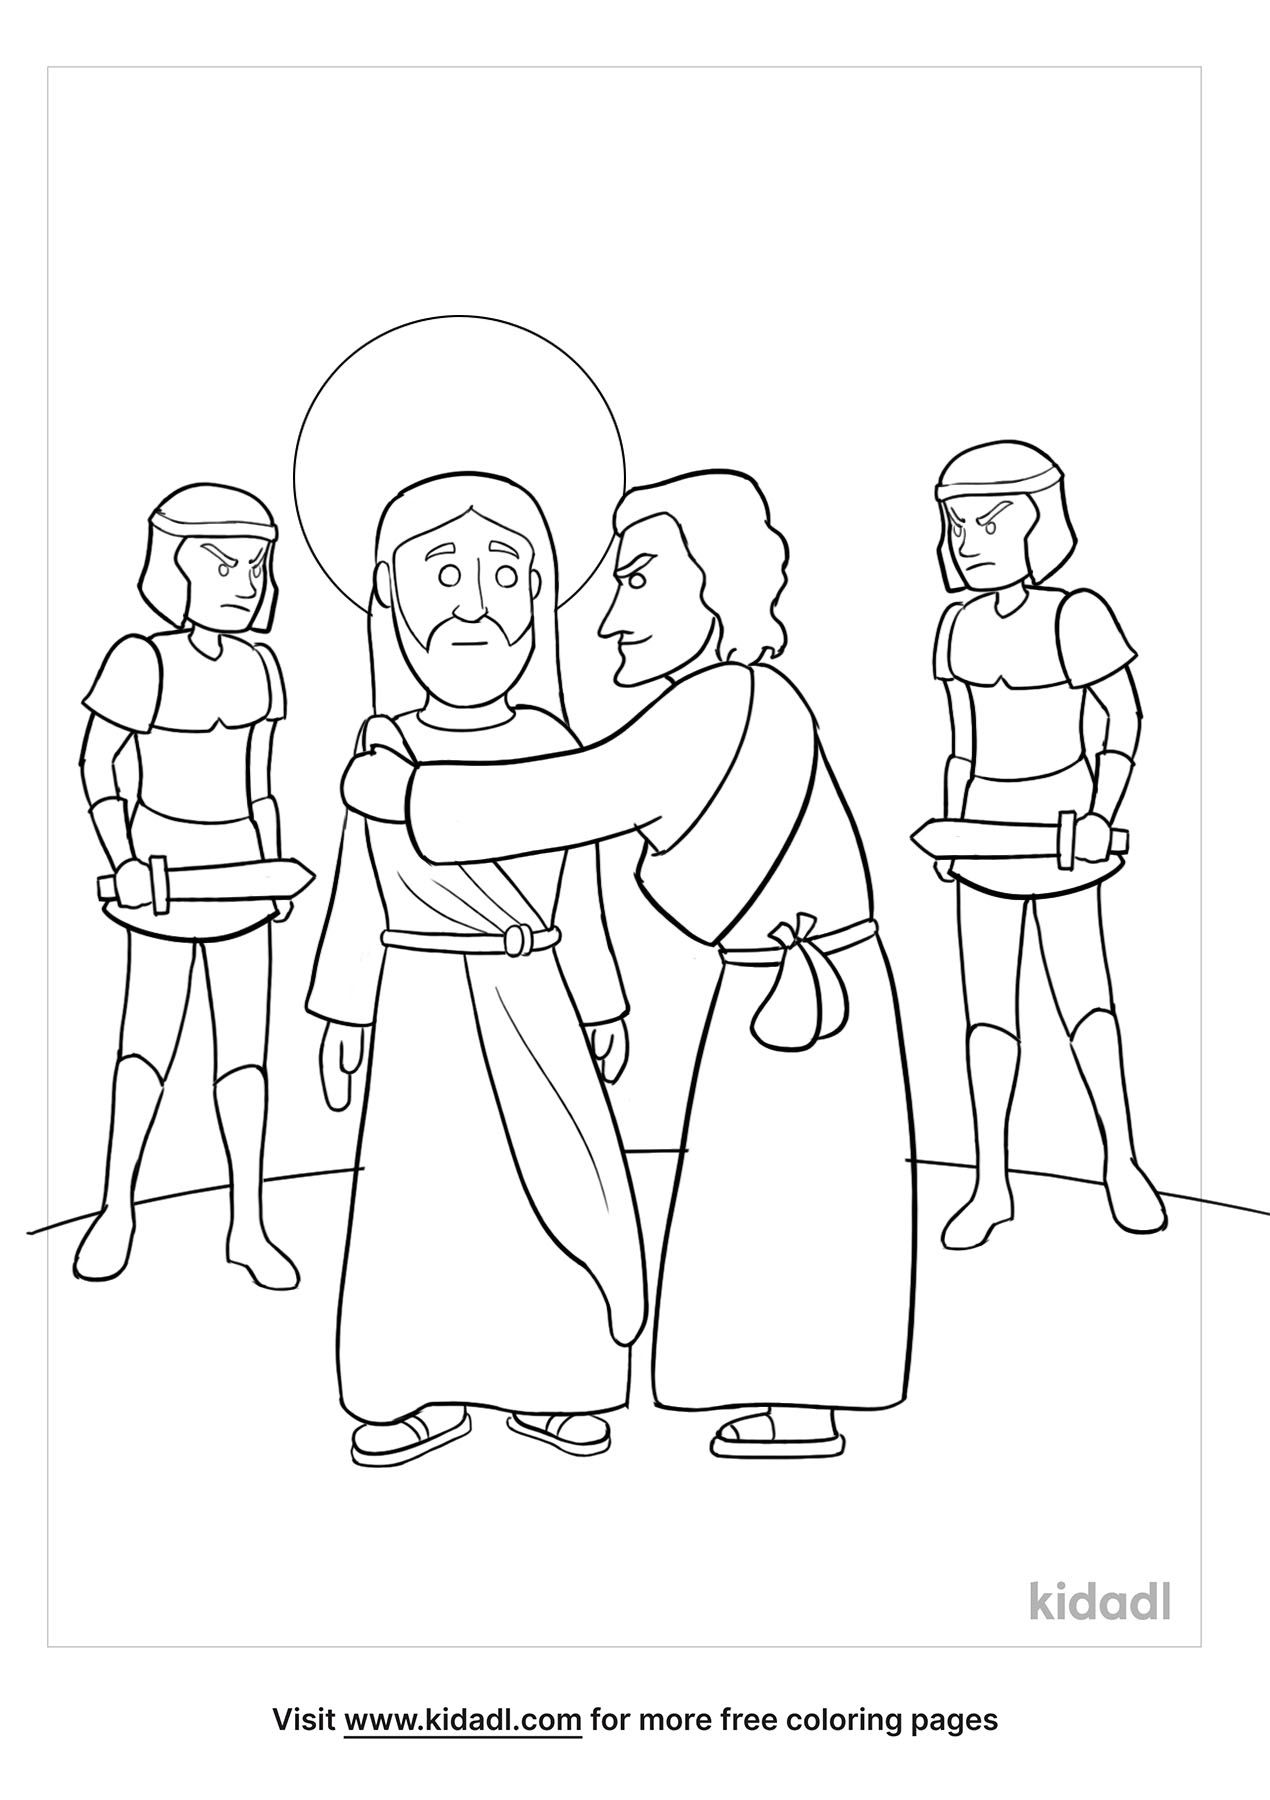 judas betrays jesus coloring free bible kidadl lg trucks printables colors of kwanzaa coloring pages Jesus Coloring Page